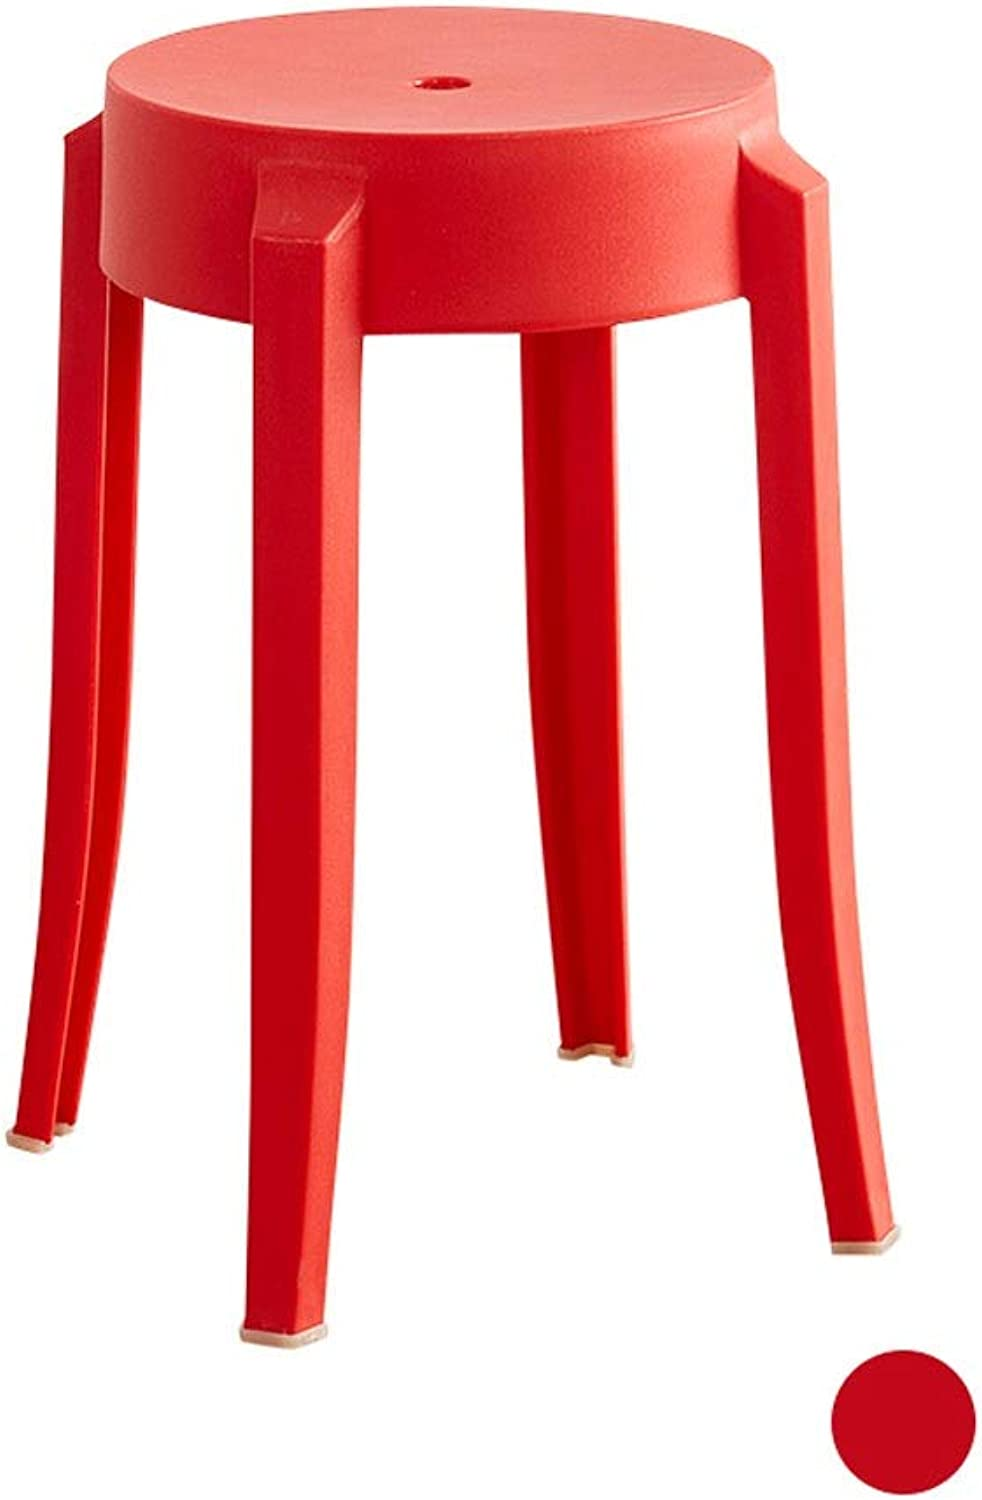 Thicken Adult Plastic Chair Space High Table Bench Home High Stool Fashion Creative Simple Small Round Stool (color   Red)